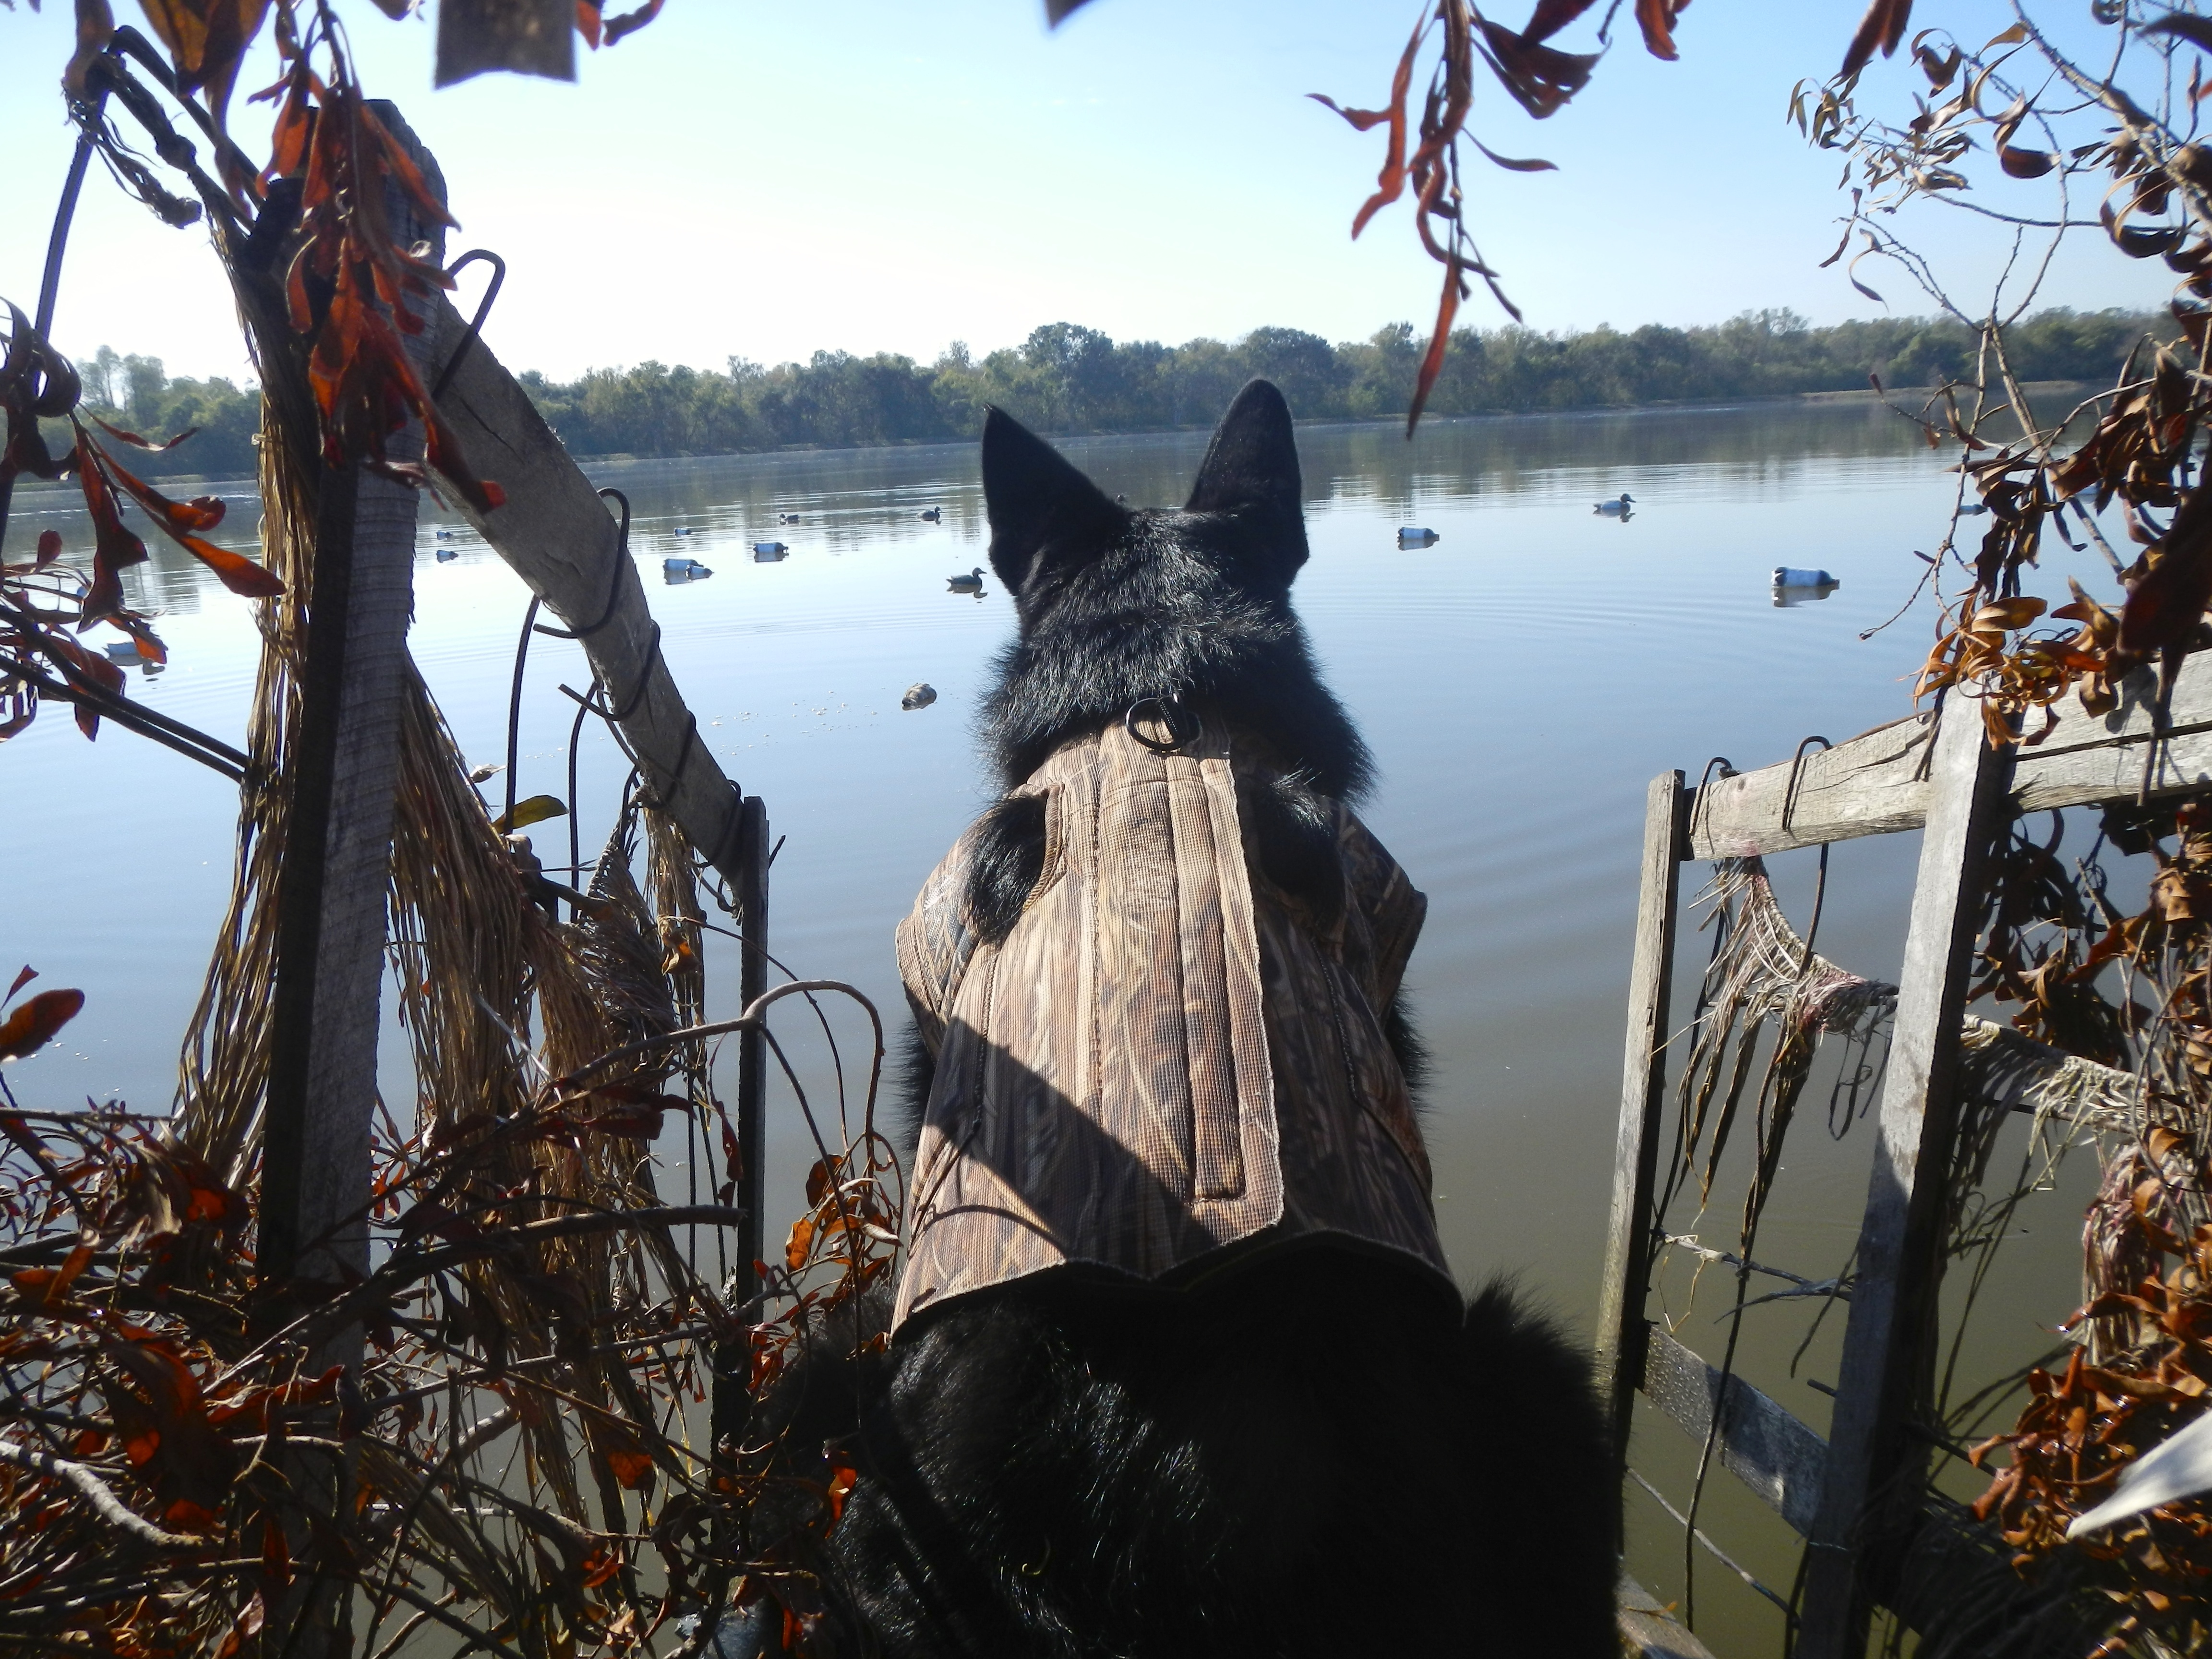 Diesel patiently waits for the ducks to start falling.